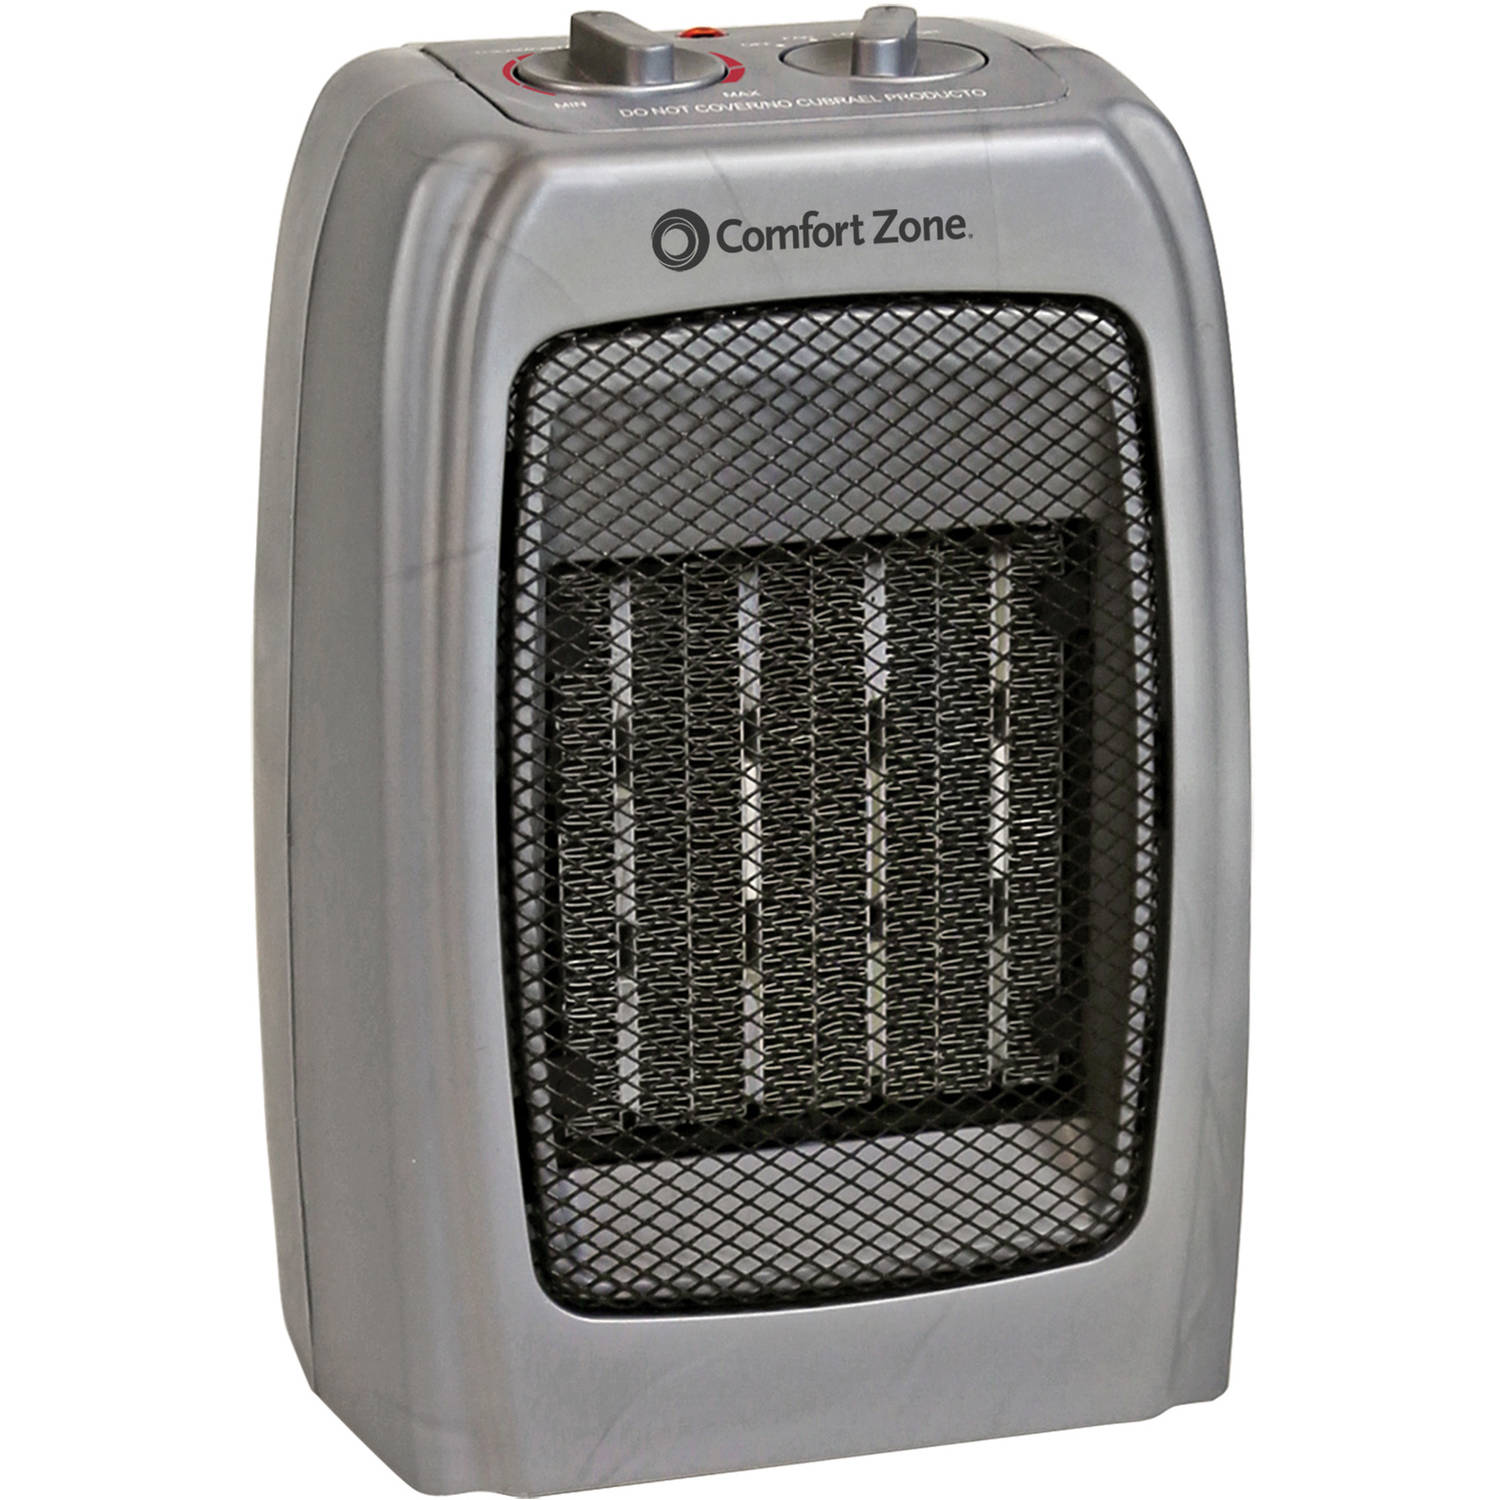 Comfort Zone Ceramic Heater, Silver